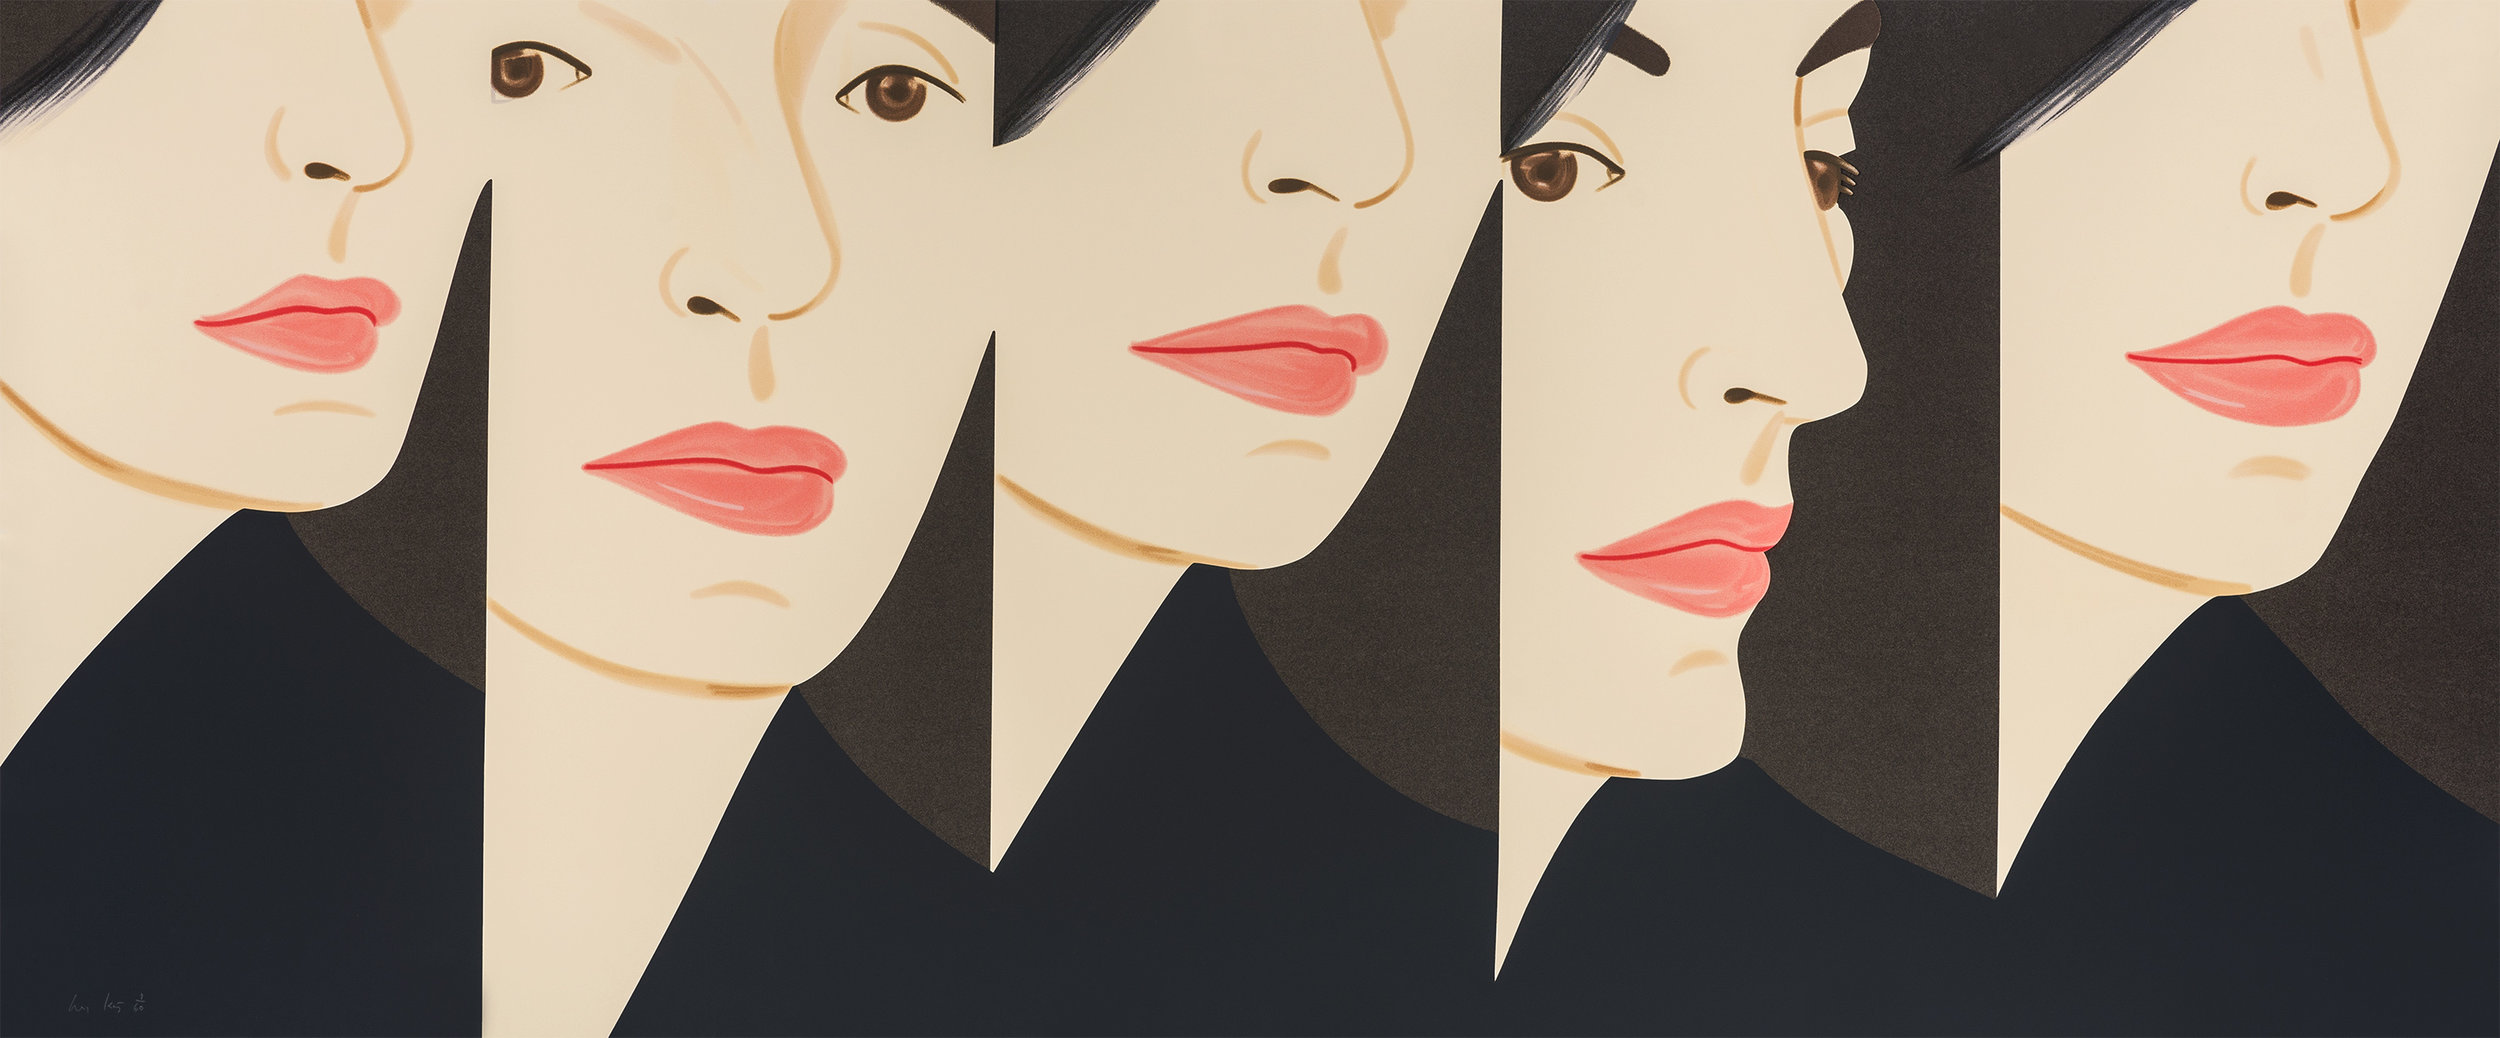 Alex Katz  VIVIEN X 5 , 2018 20-color silkscreen 40 x 96 in.